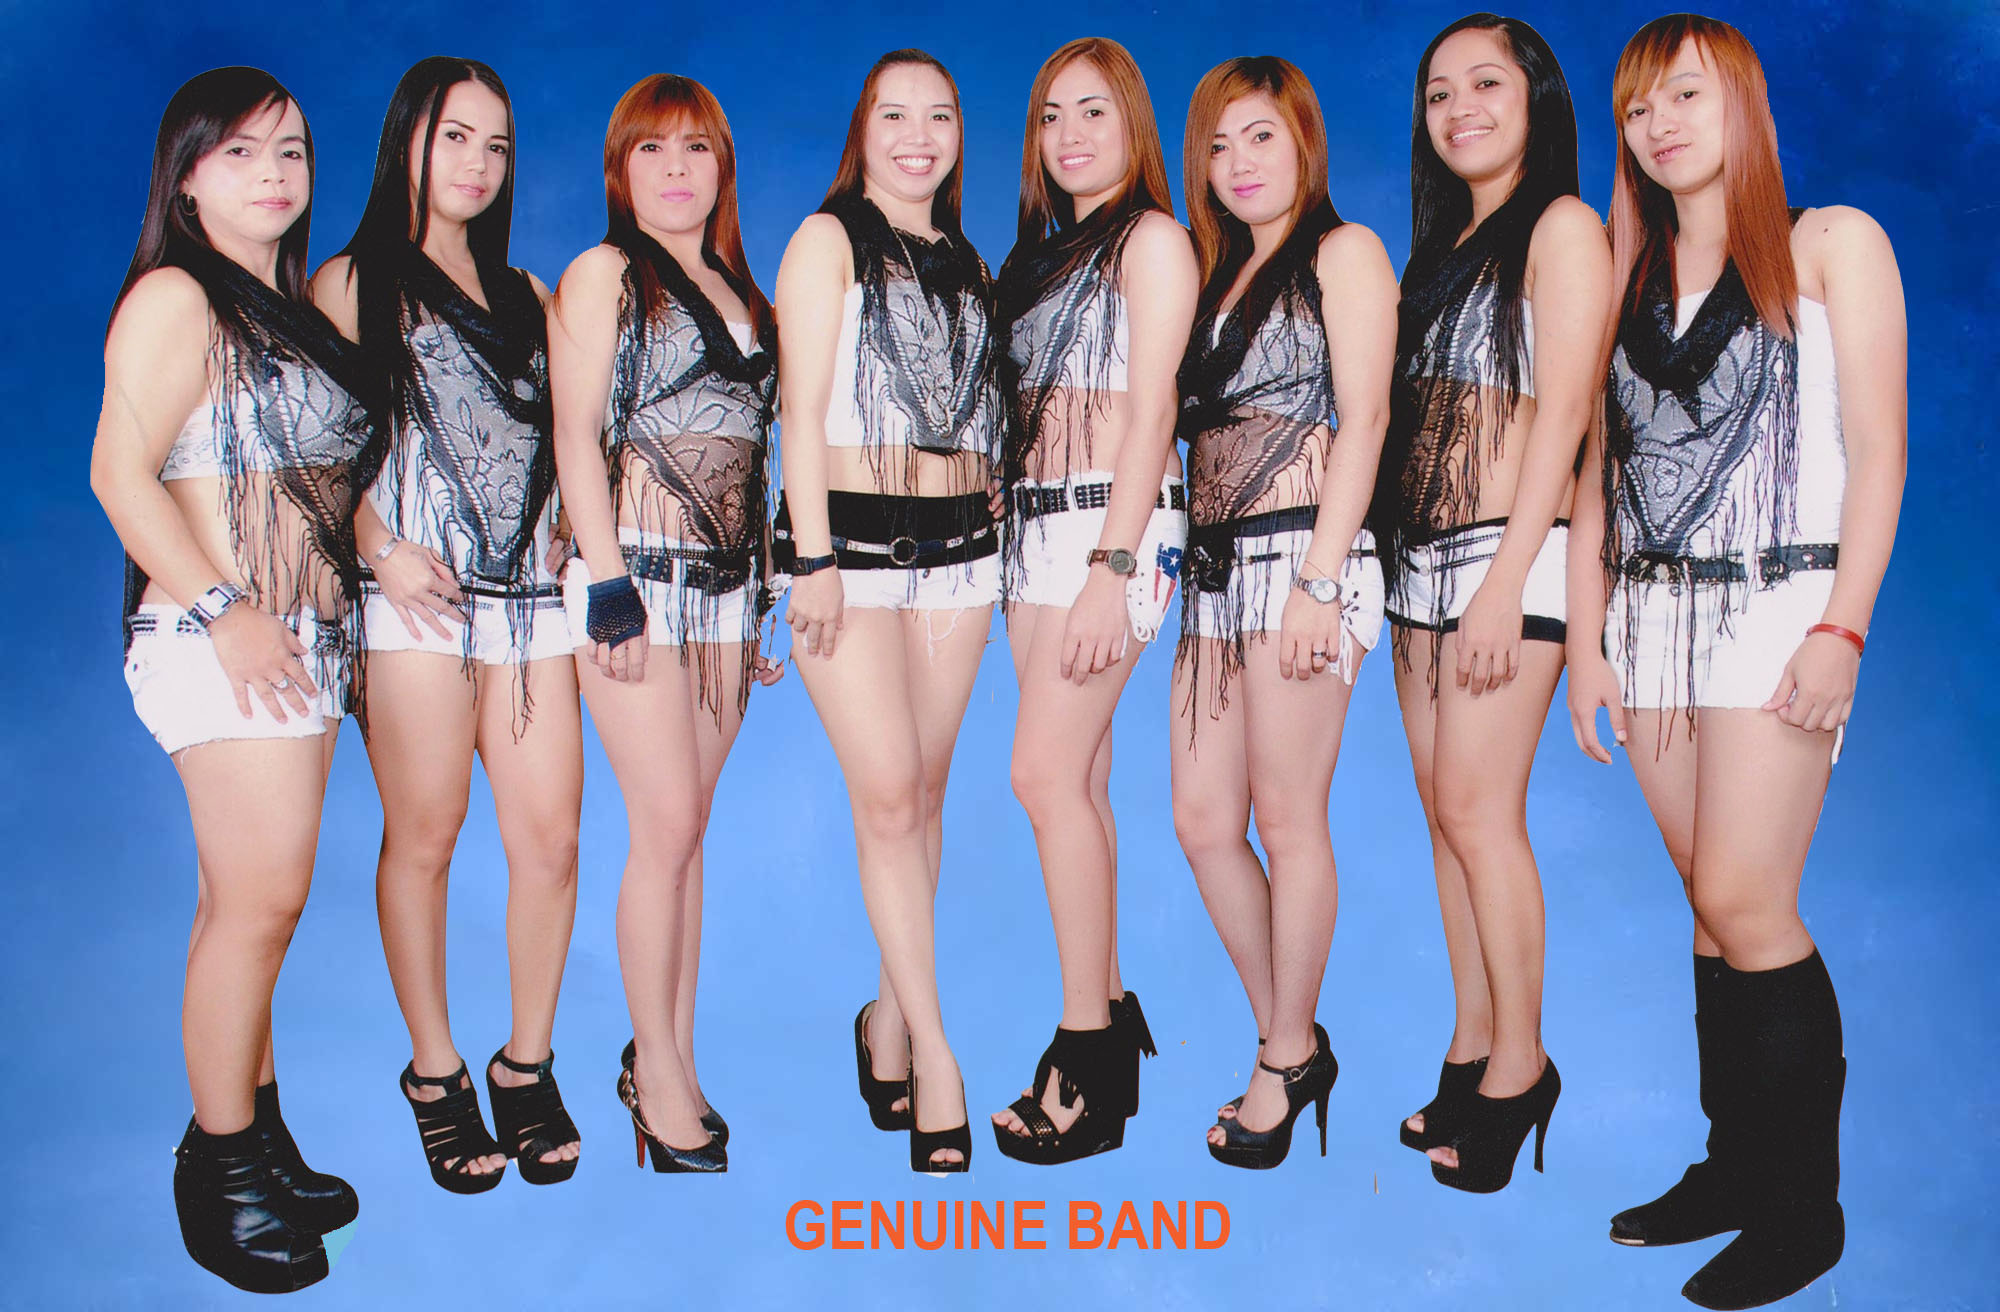 Genuine_band